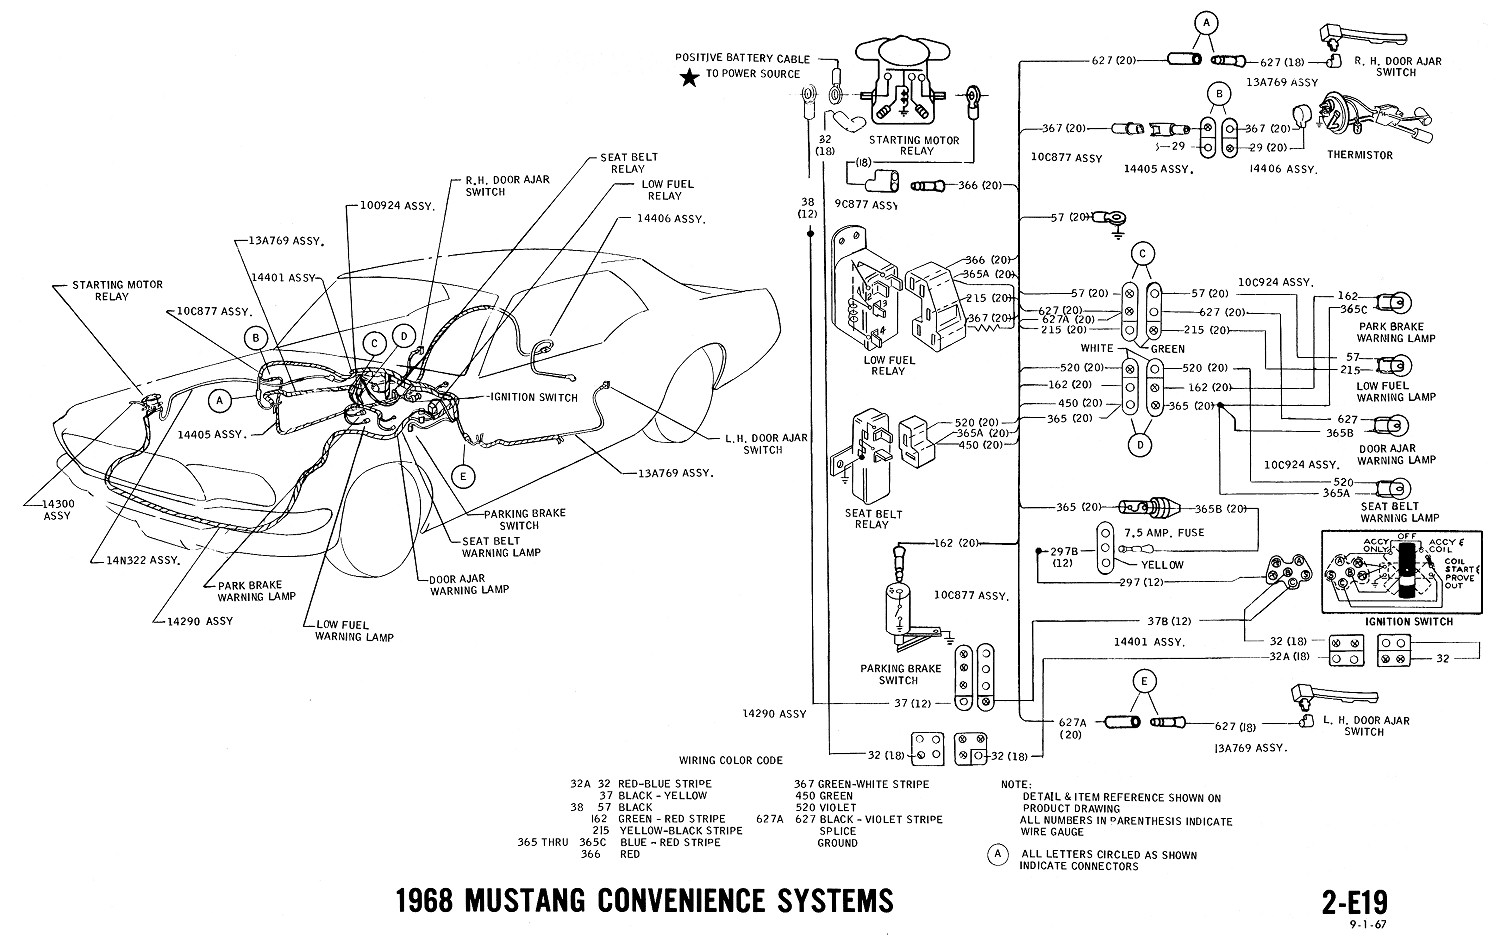 1968 Mustang Wiring Diagrams on chevy wiring diagram symbols